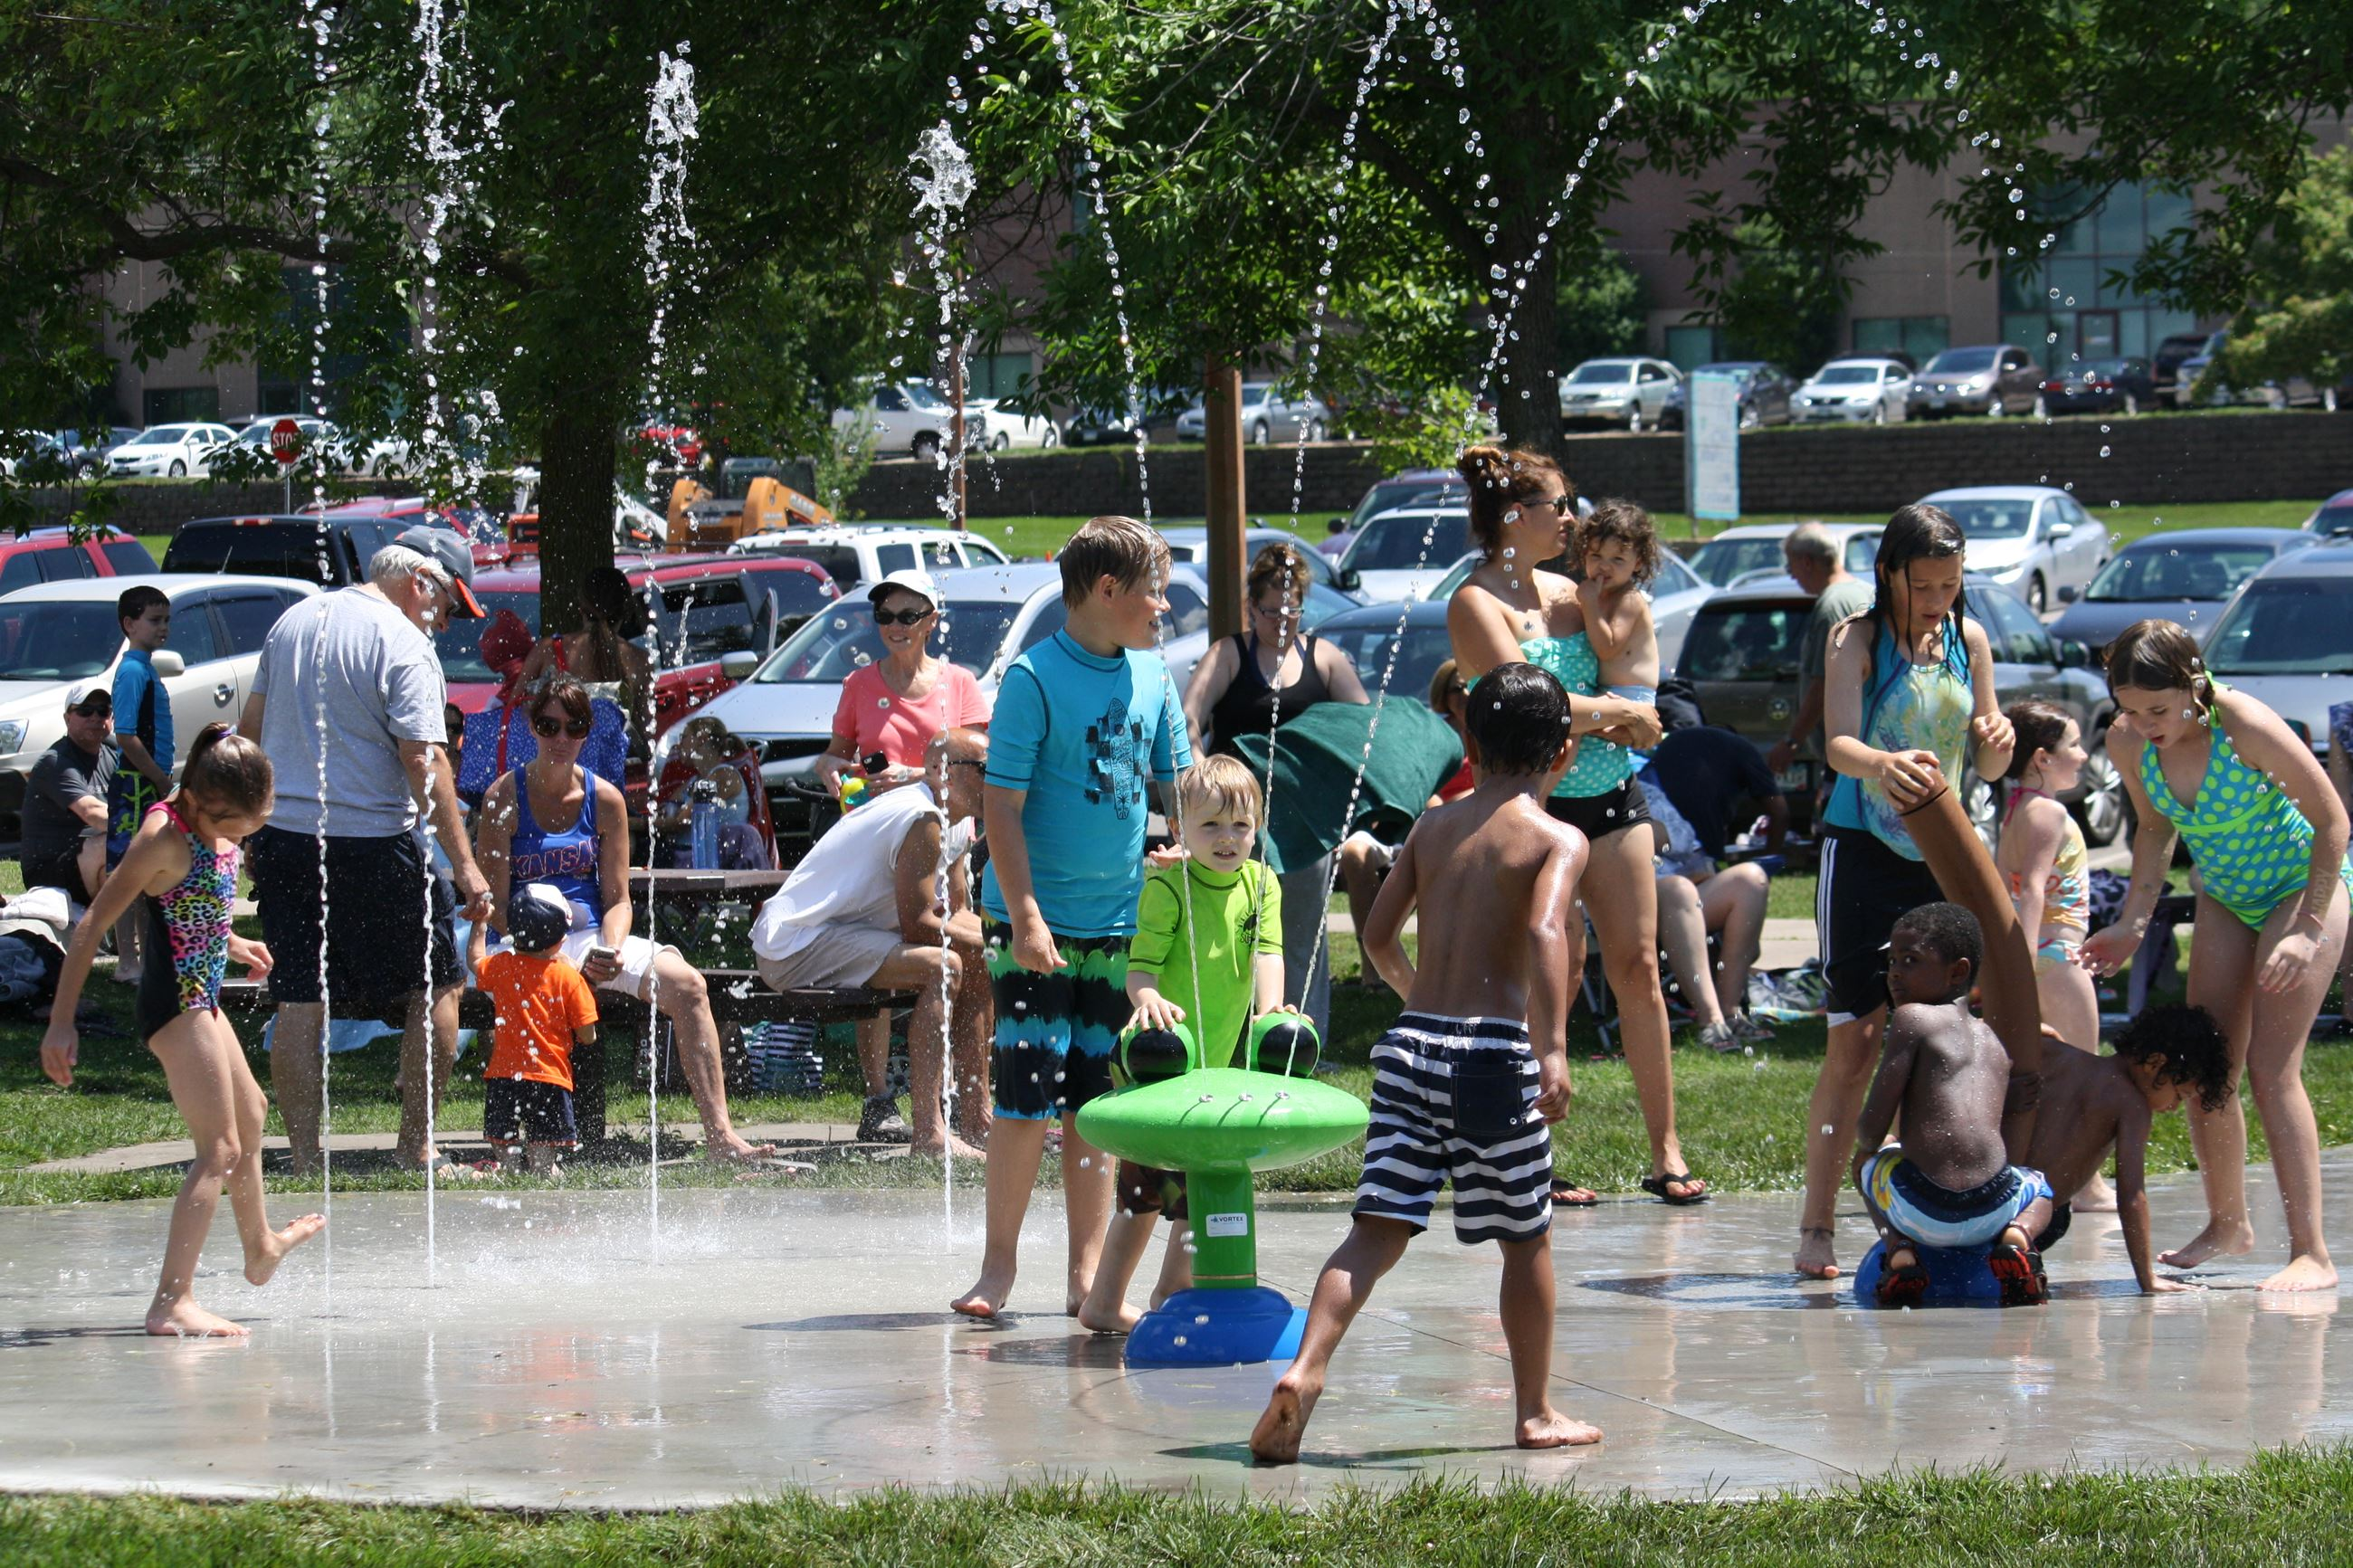 Children play in water fountains at a splash pad